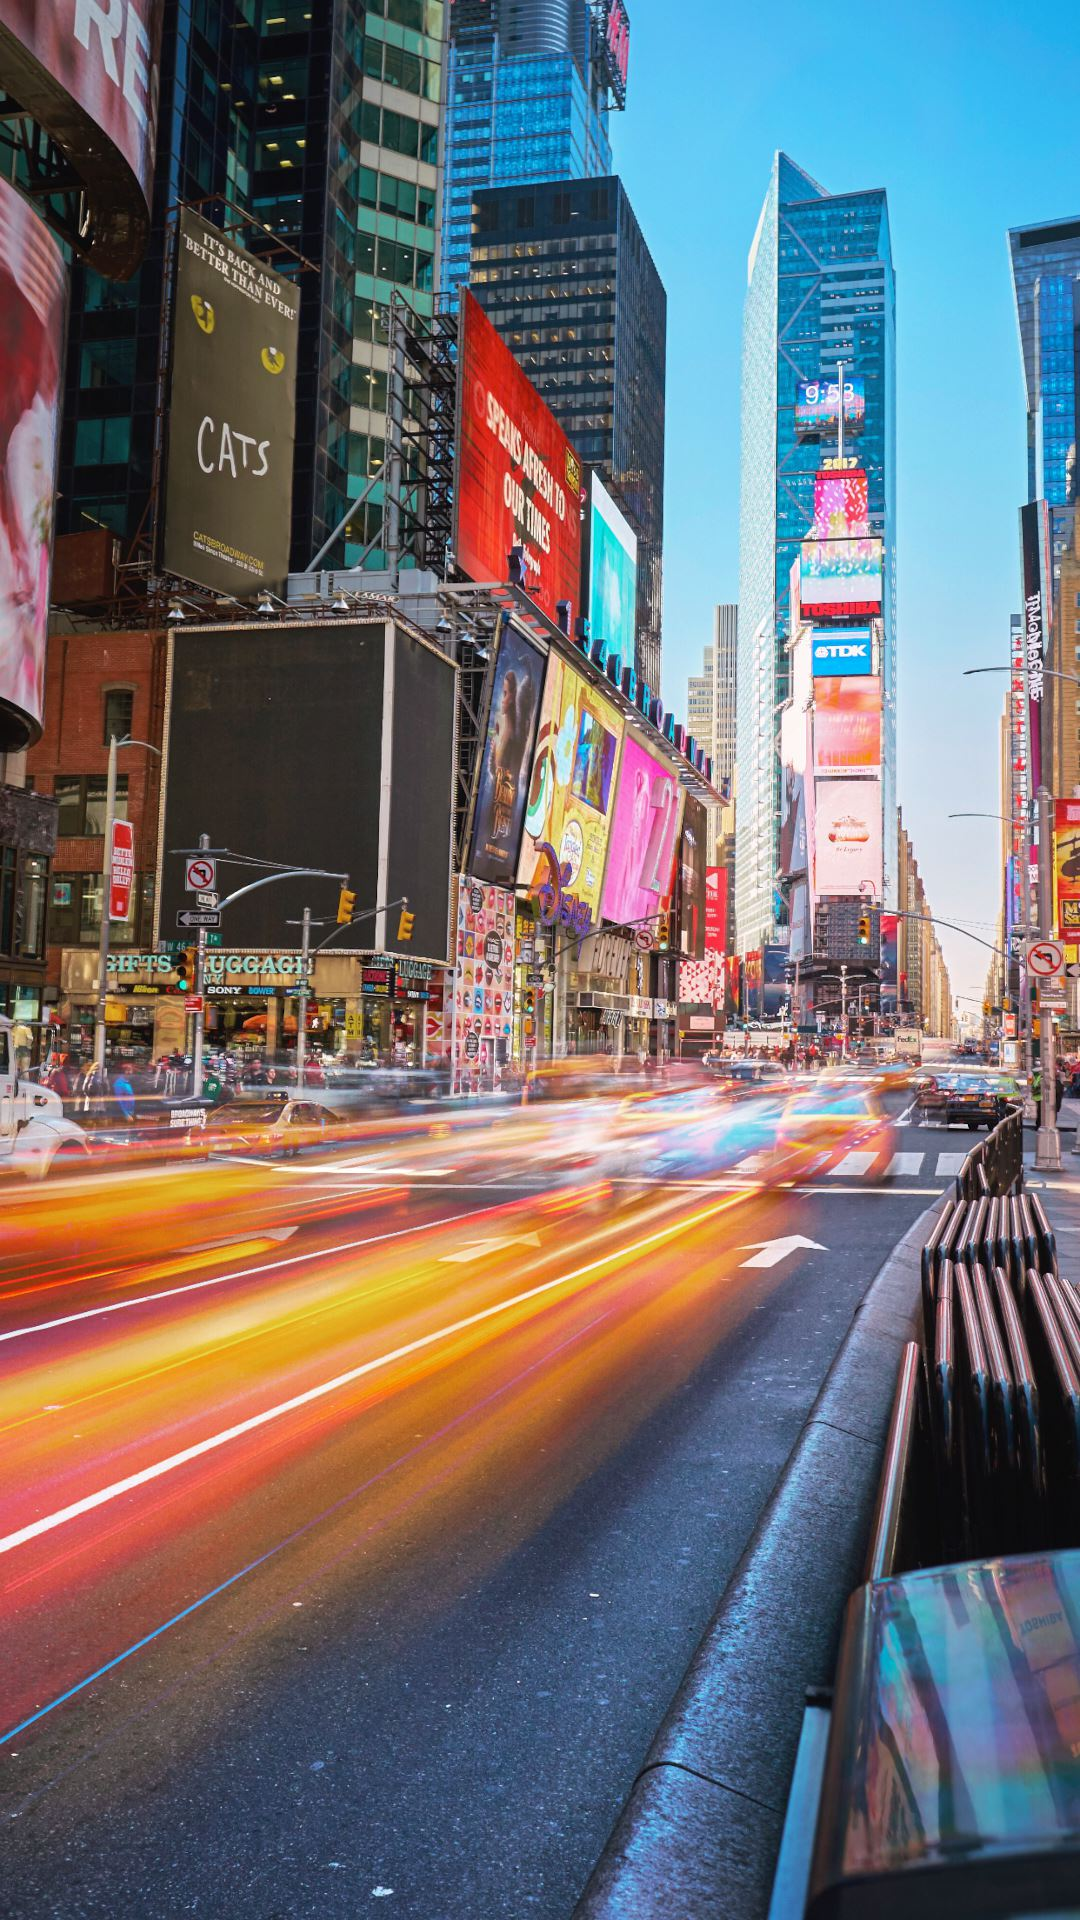 Wallpaper iPhone travel photography nyc New York long exposure taxi Times Square